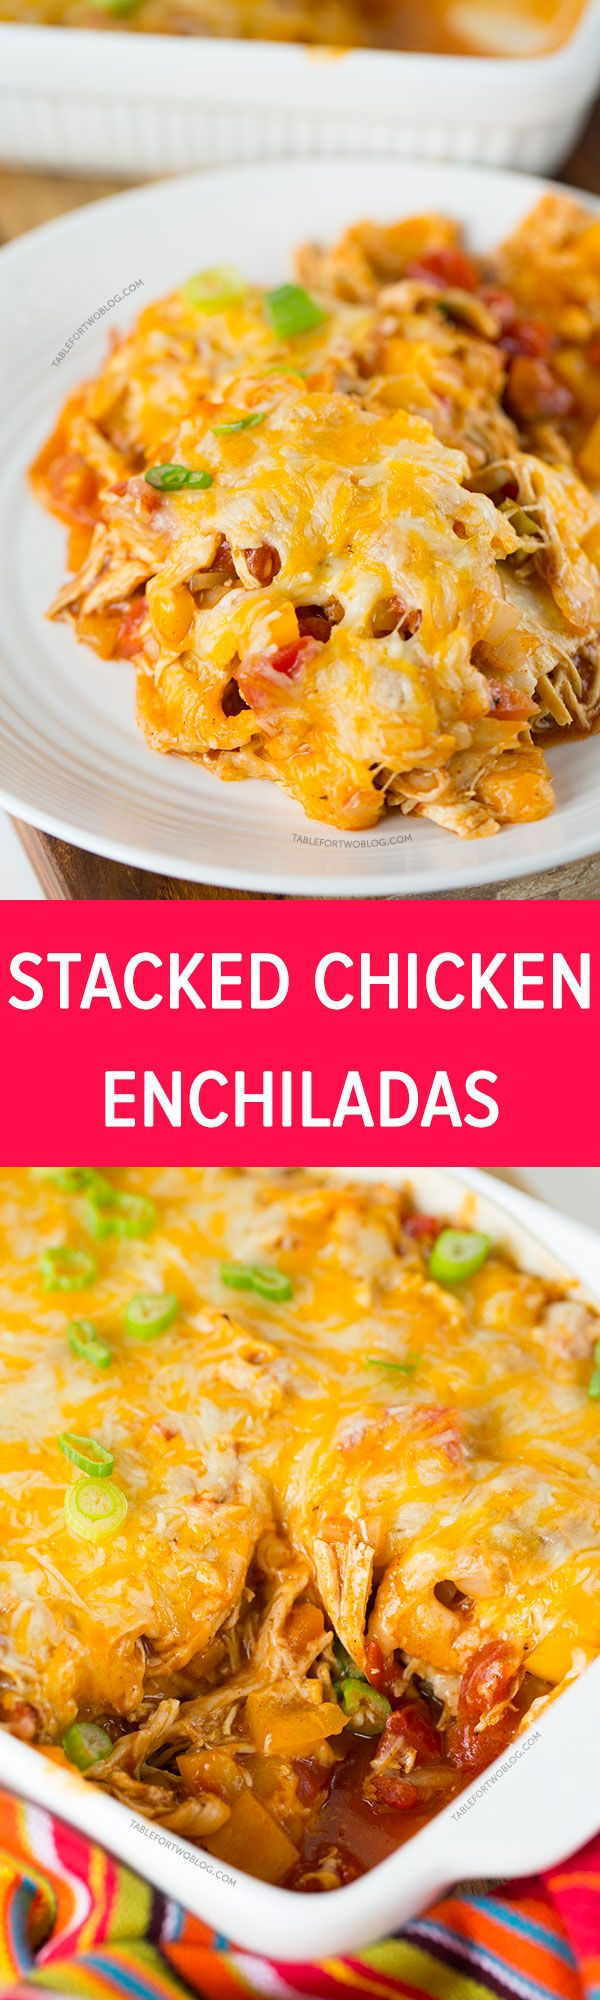 Stacked chicken enchiladas are the way to go if you're craving Mexican and don't want all the prep time that's involved in regular enchiladas!